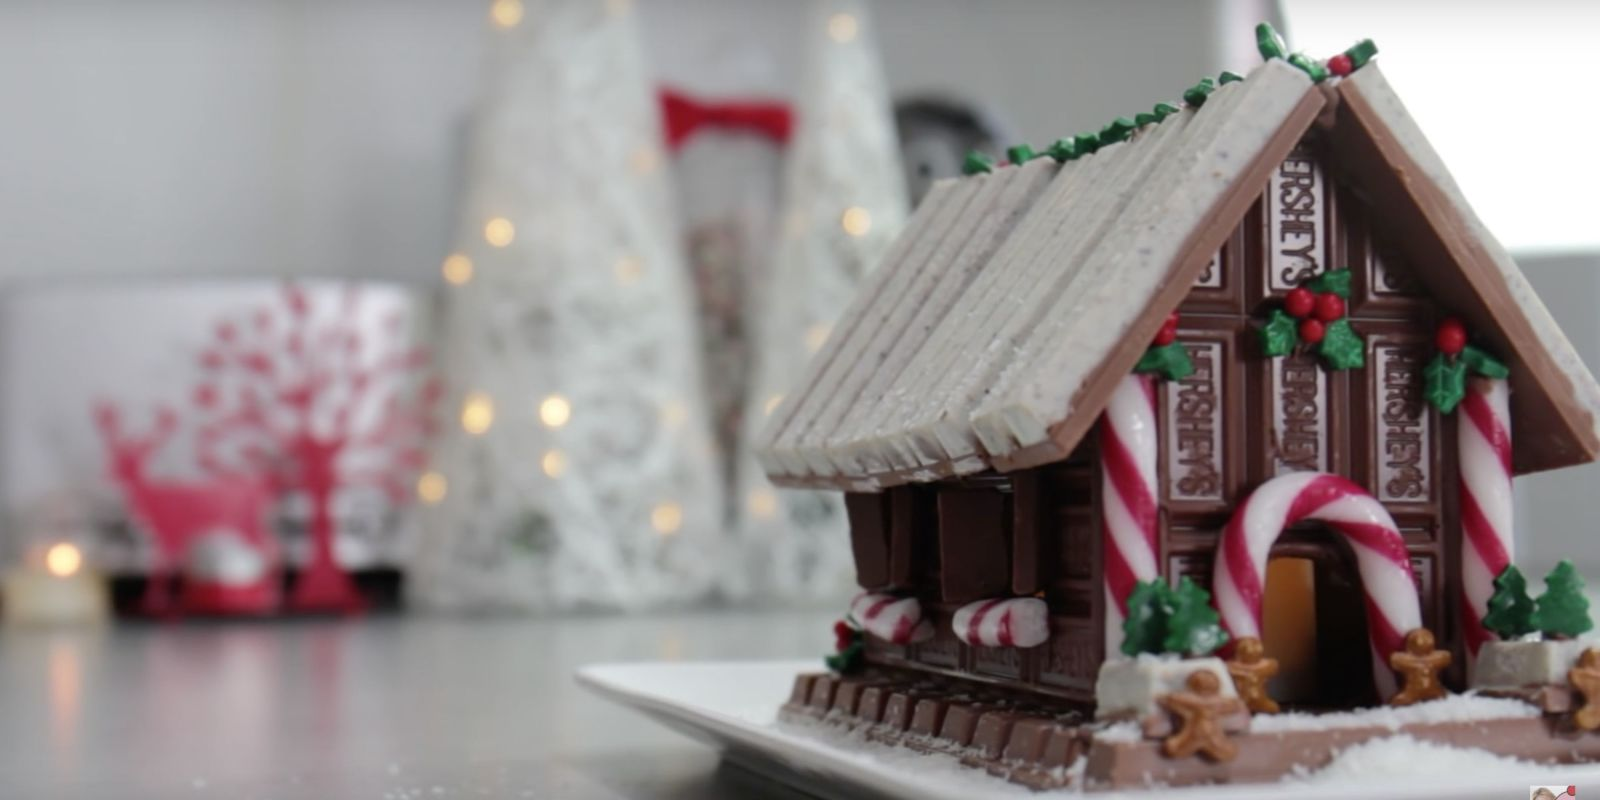 The Easiest Way To Make A Gingerbread House Is With Kit